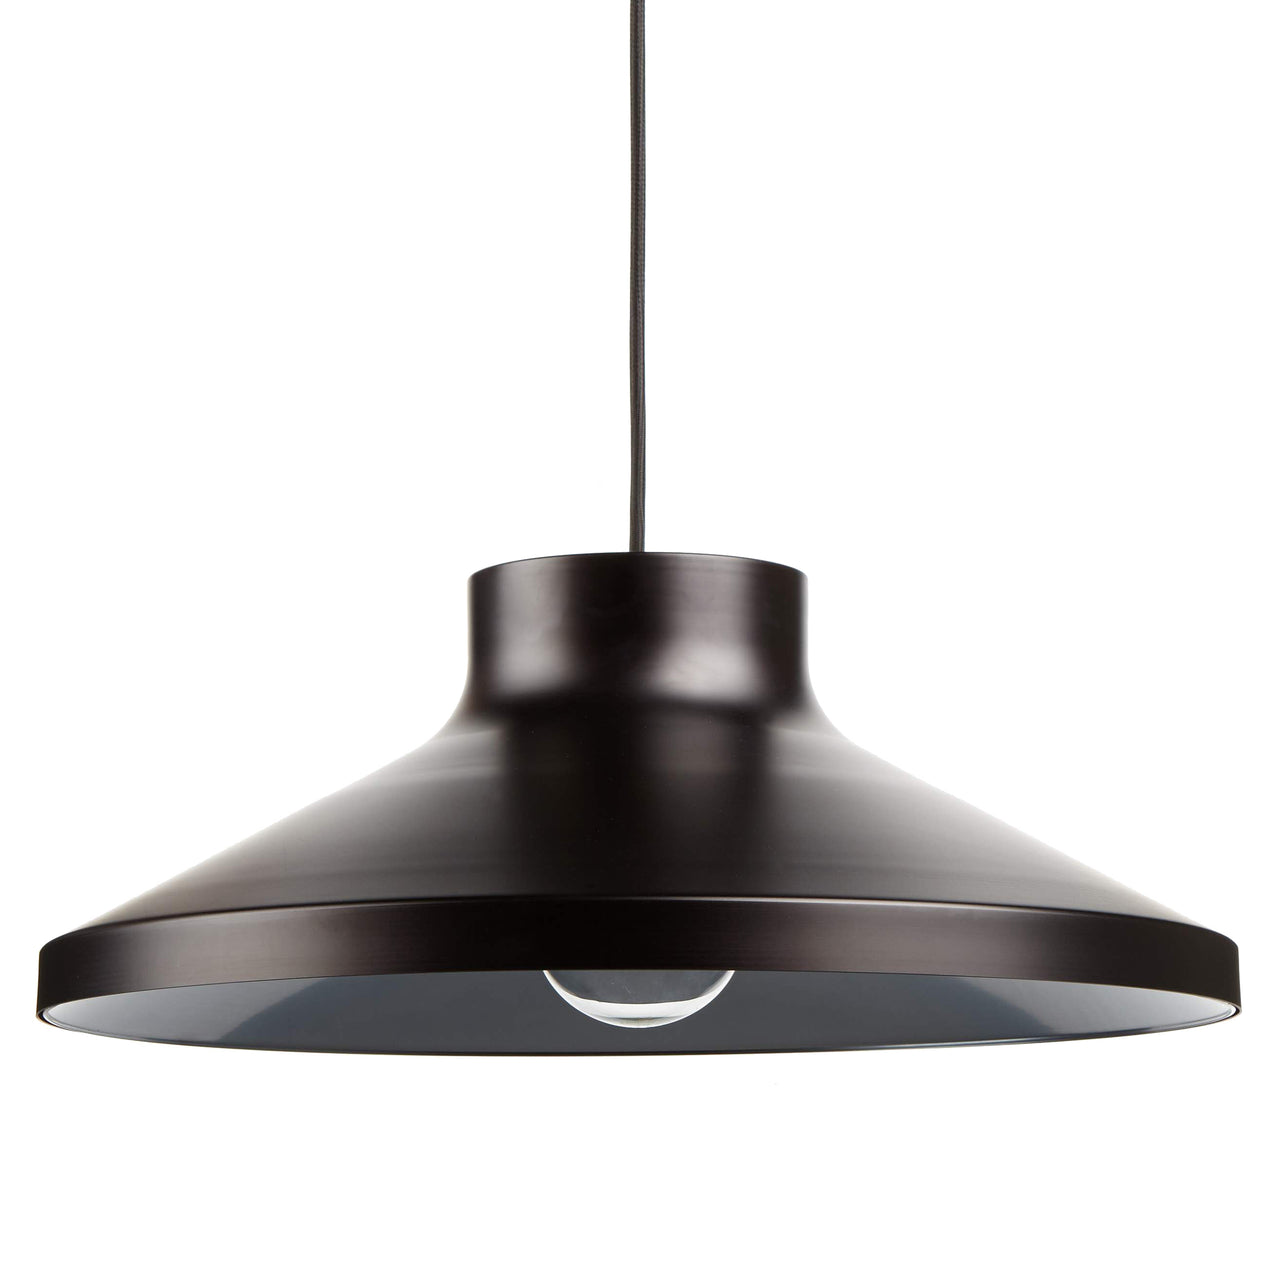 VGP1 Pendant Light: Matte Black + Grey